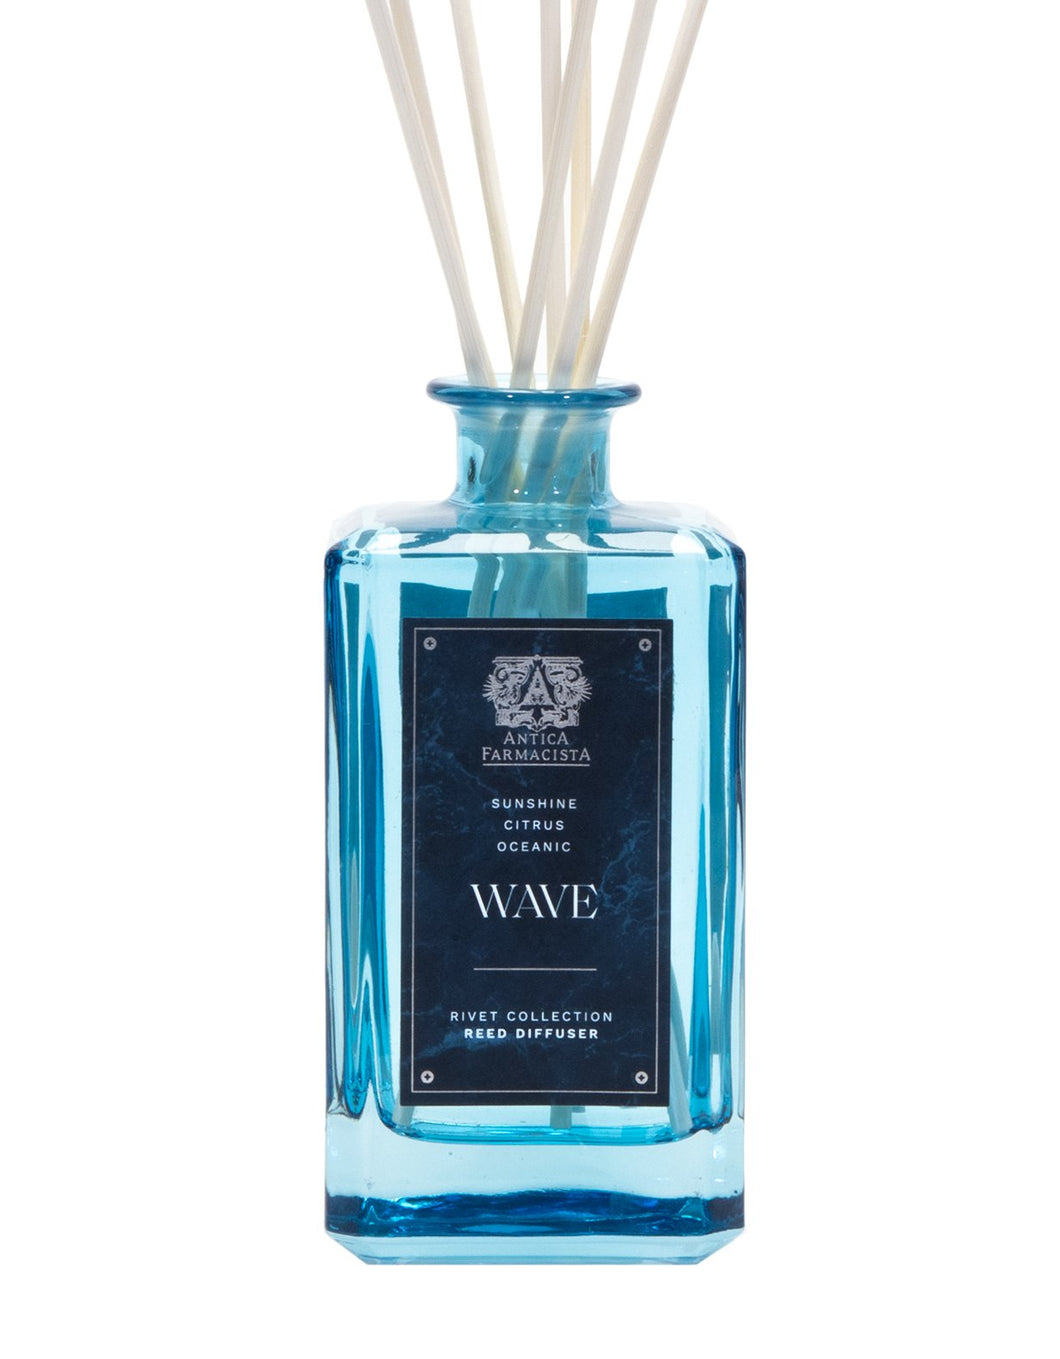 Wave Reed Diffuser